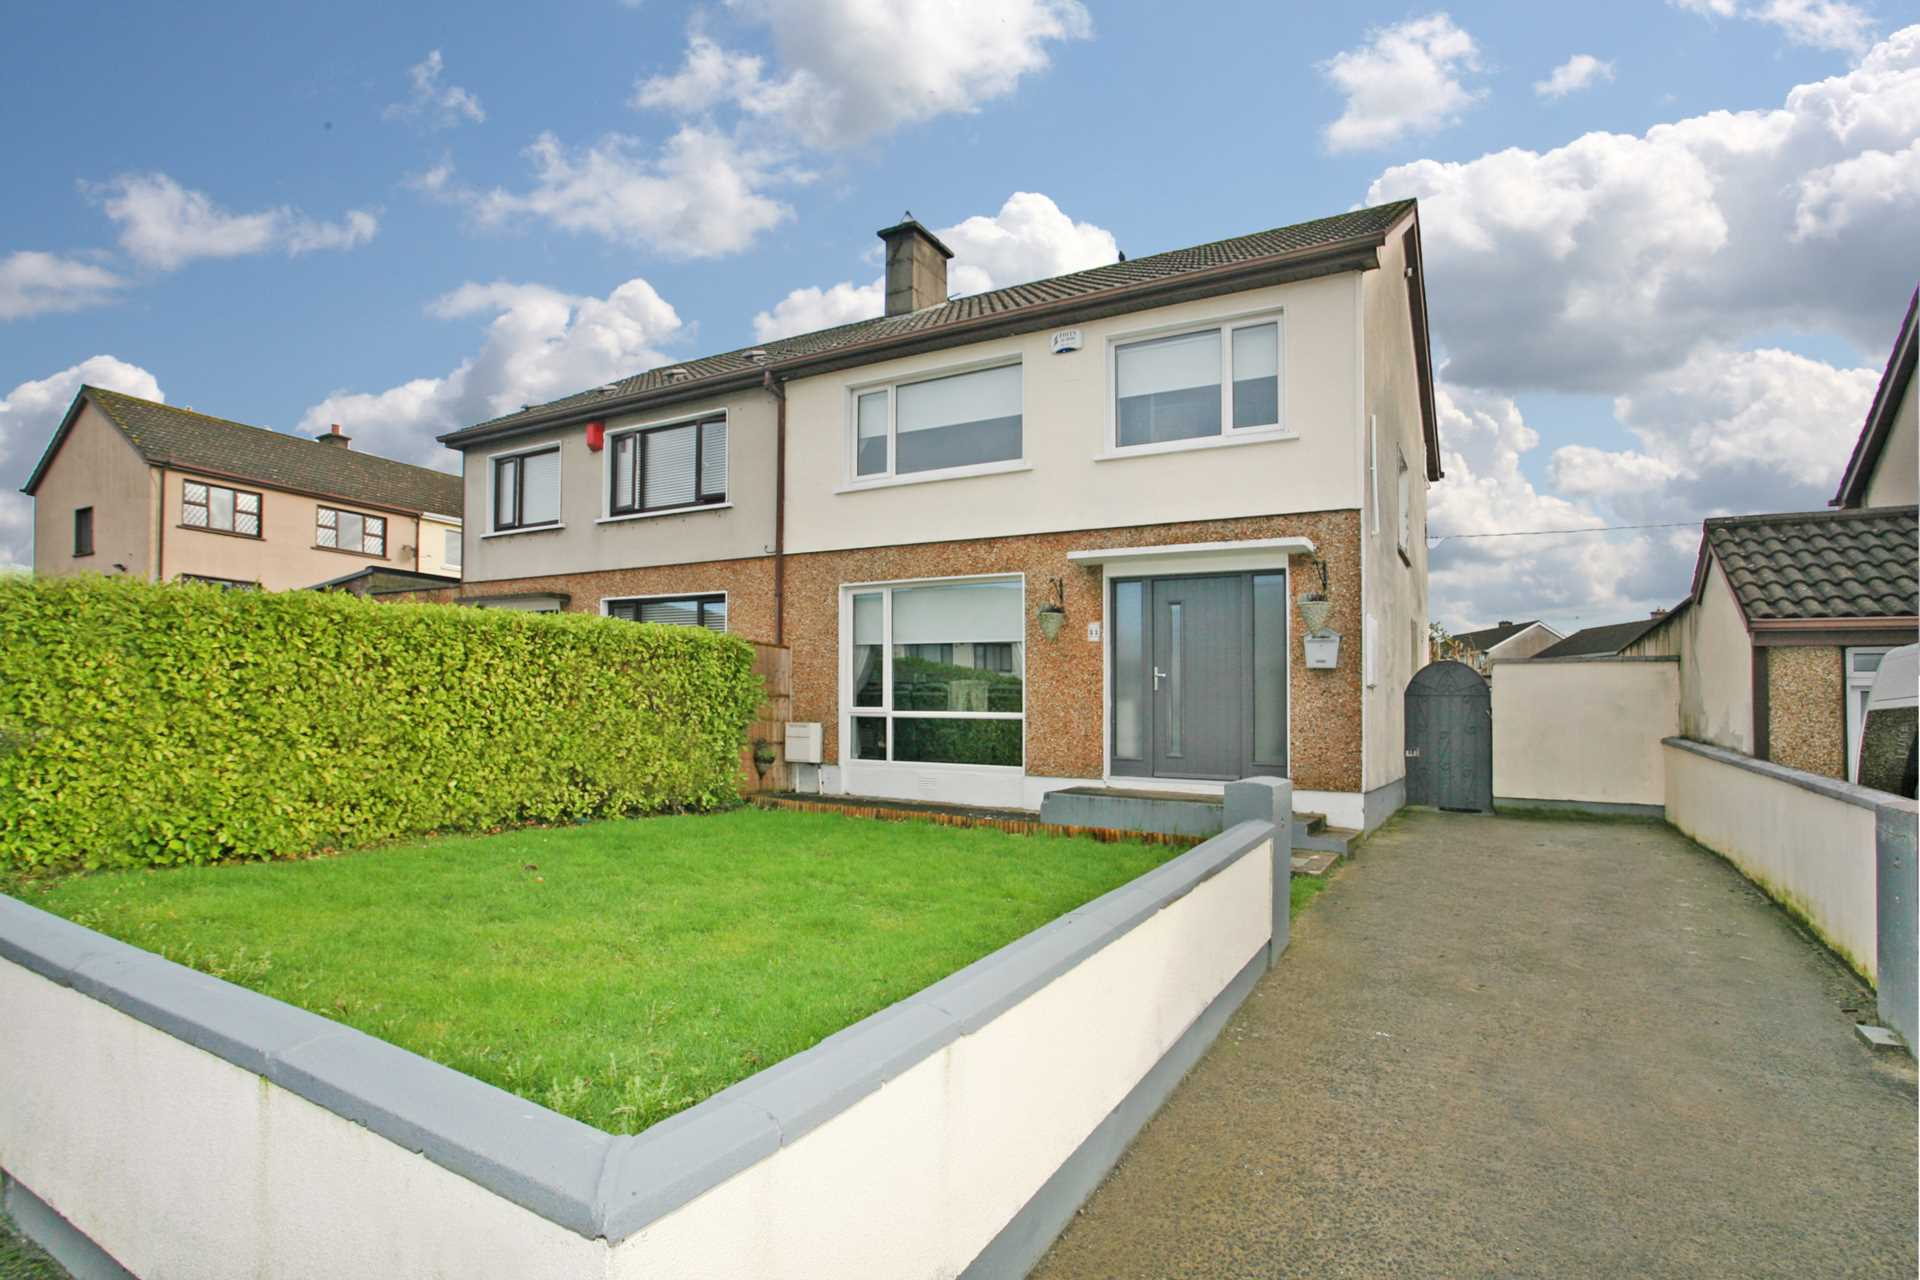 33 Shannamore Park, Clareview, Co. Limerick